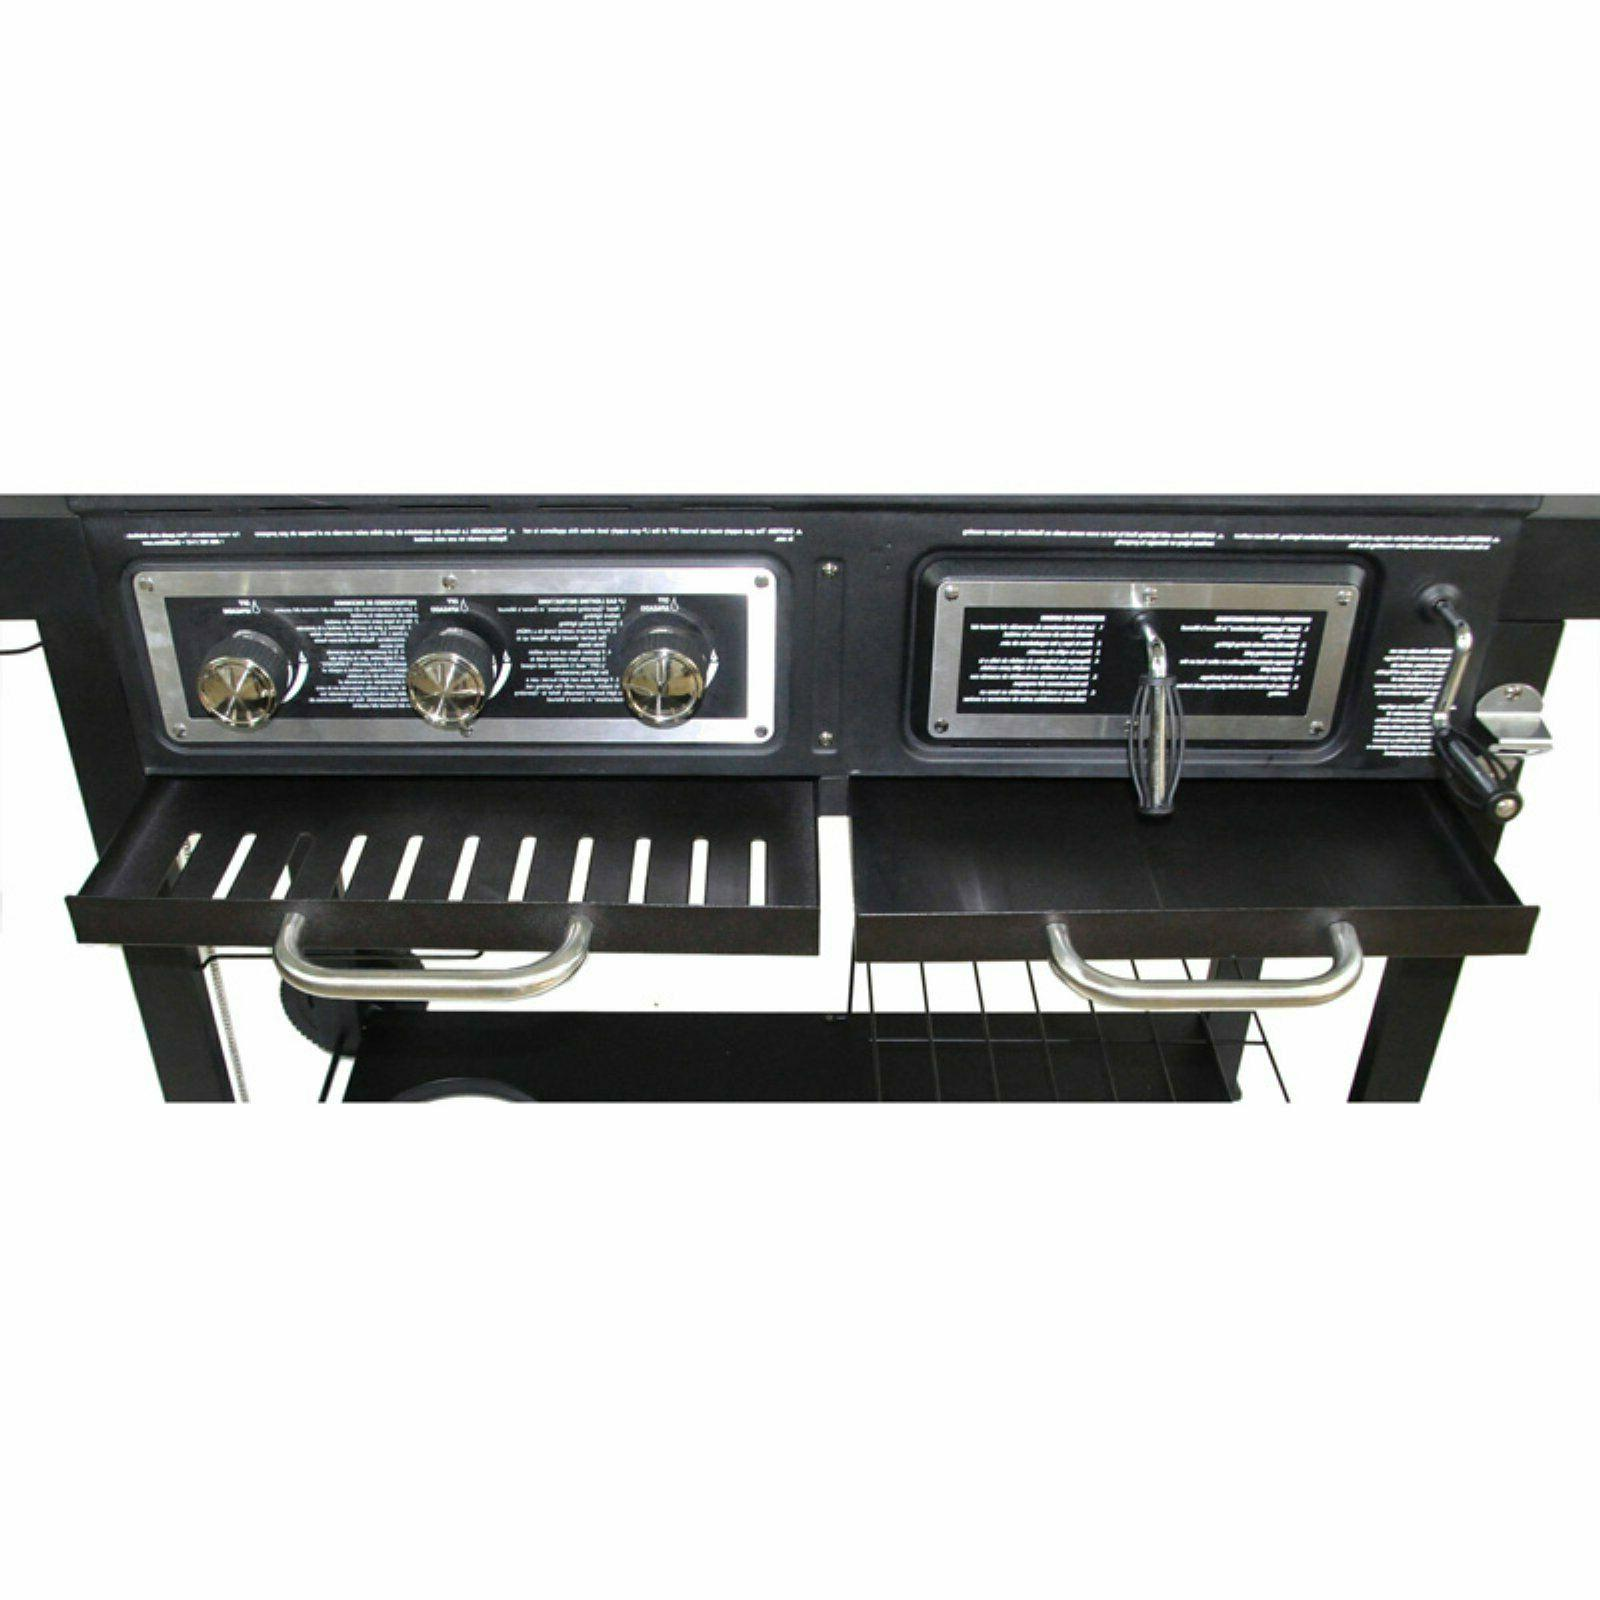 Combo Grill Gas - Charcoal Hybrid Outdoor Cooking BBQ Burner